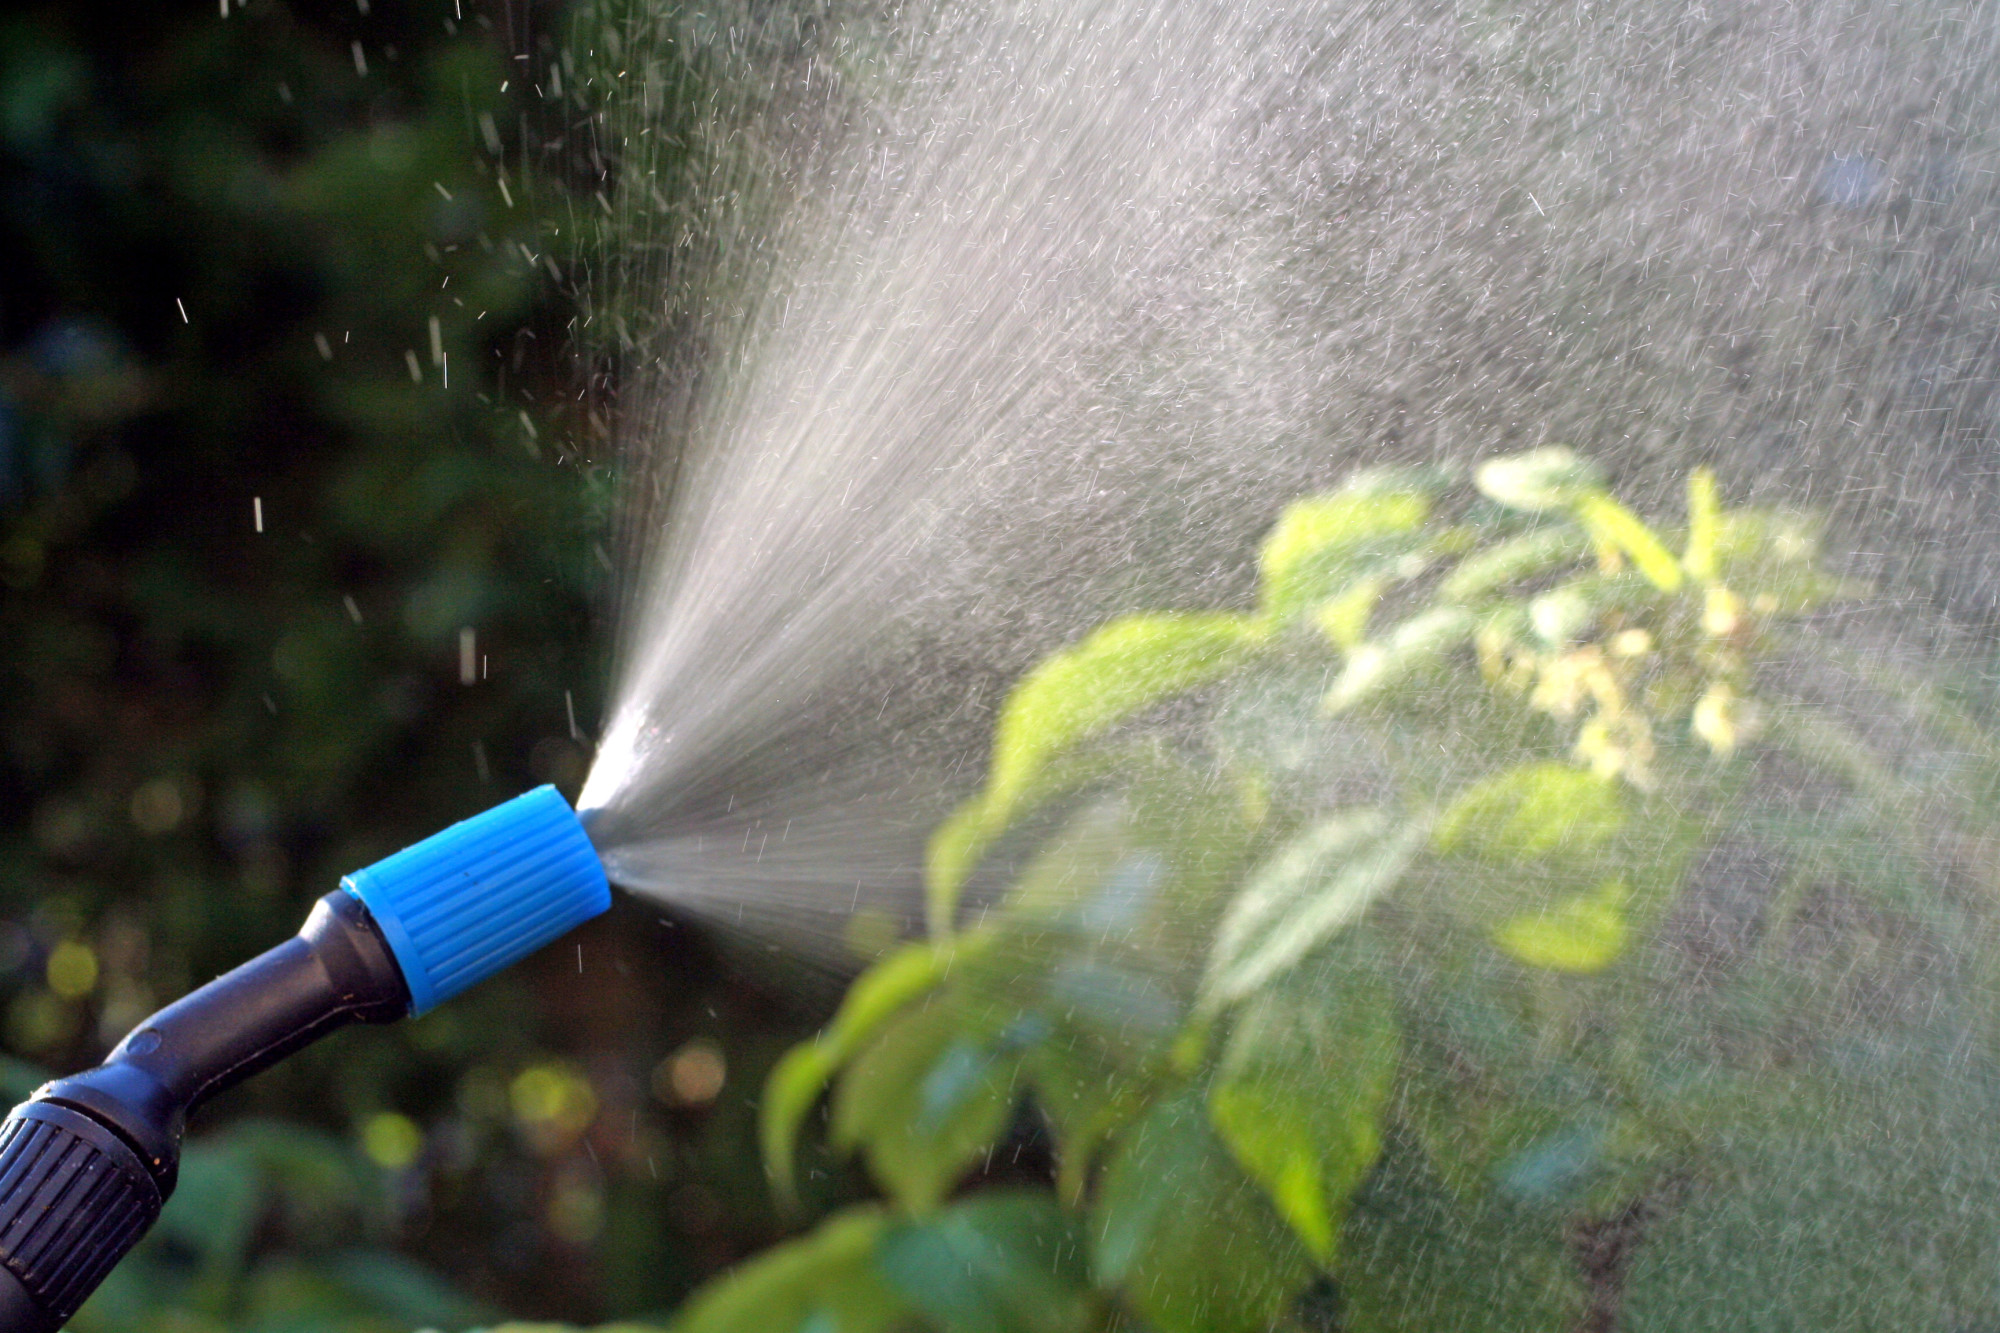 5 Ways to Keep Your Garden Free From Pests Without Using Harmful Pesticides